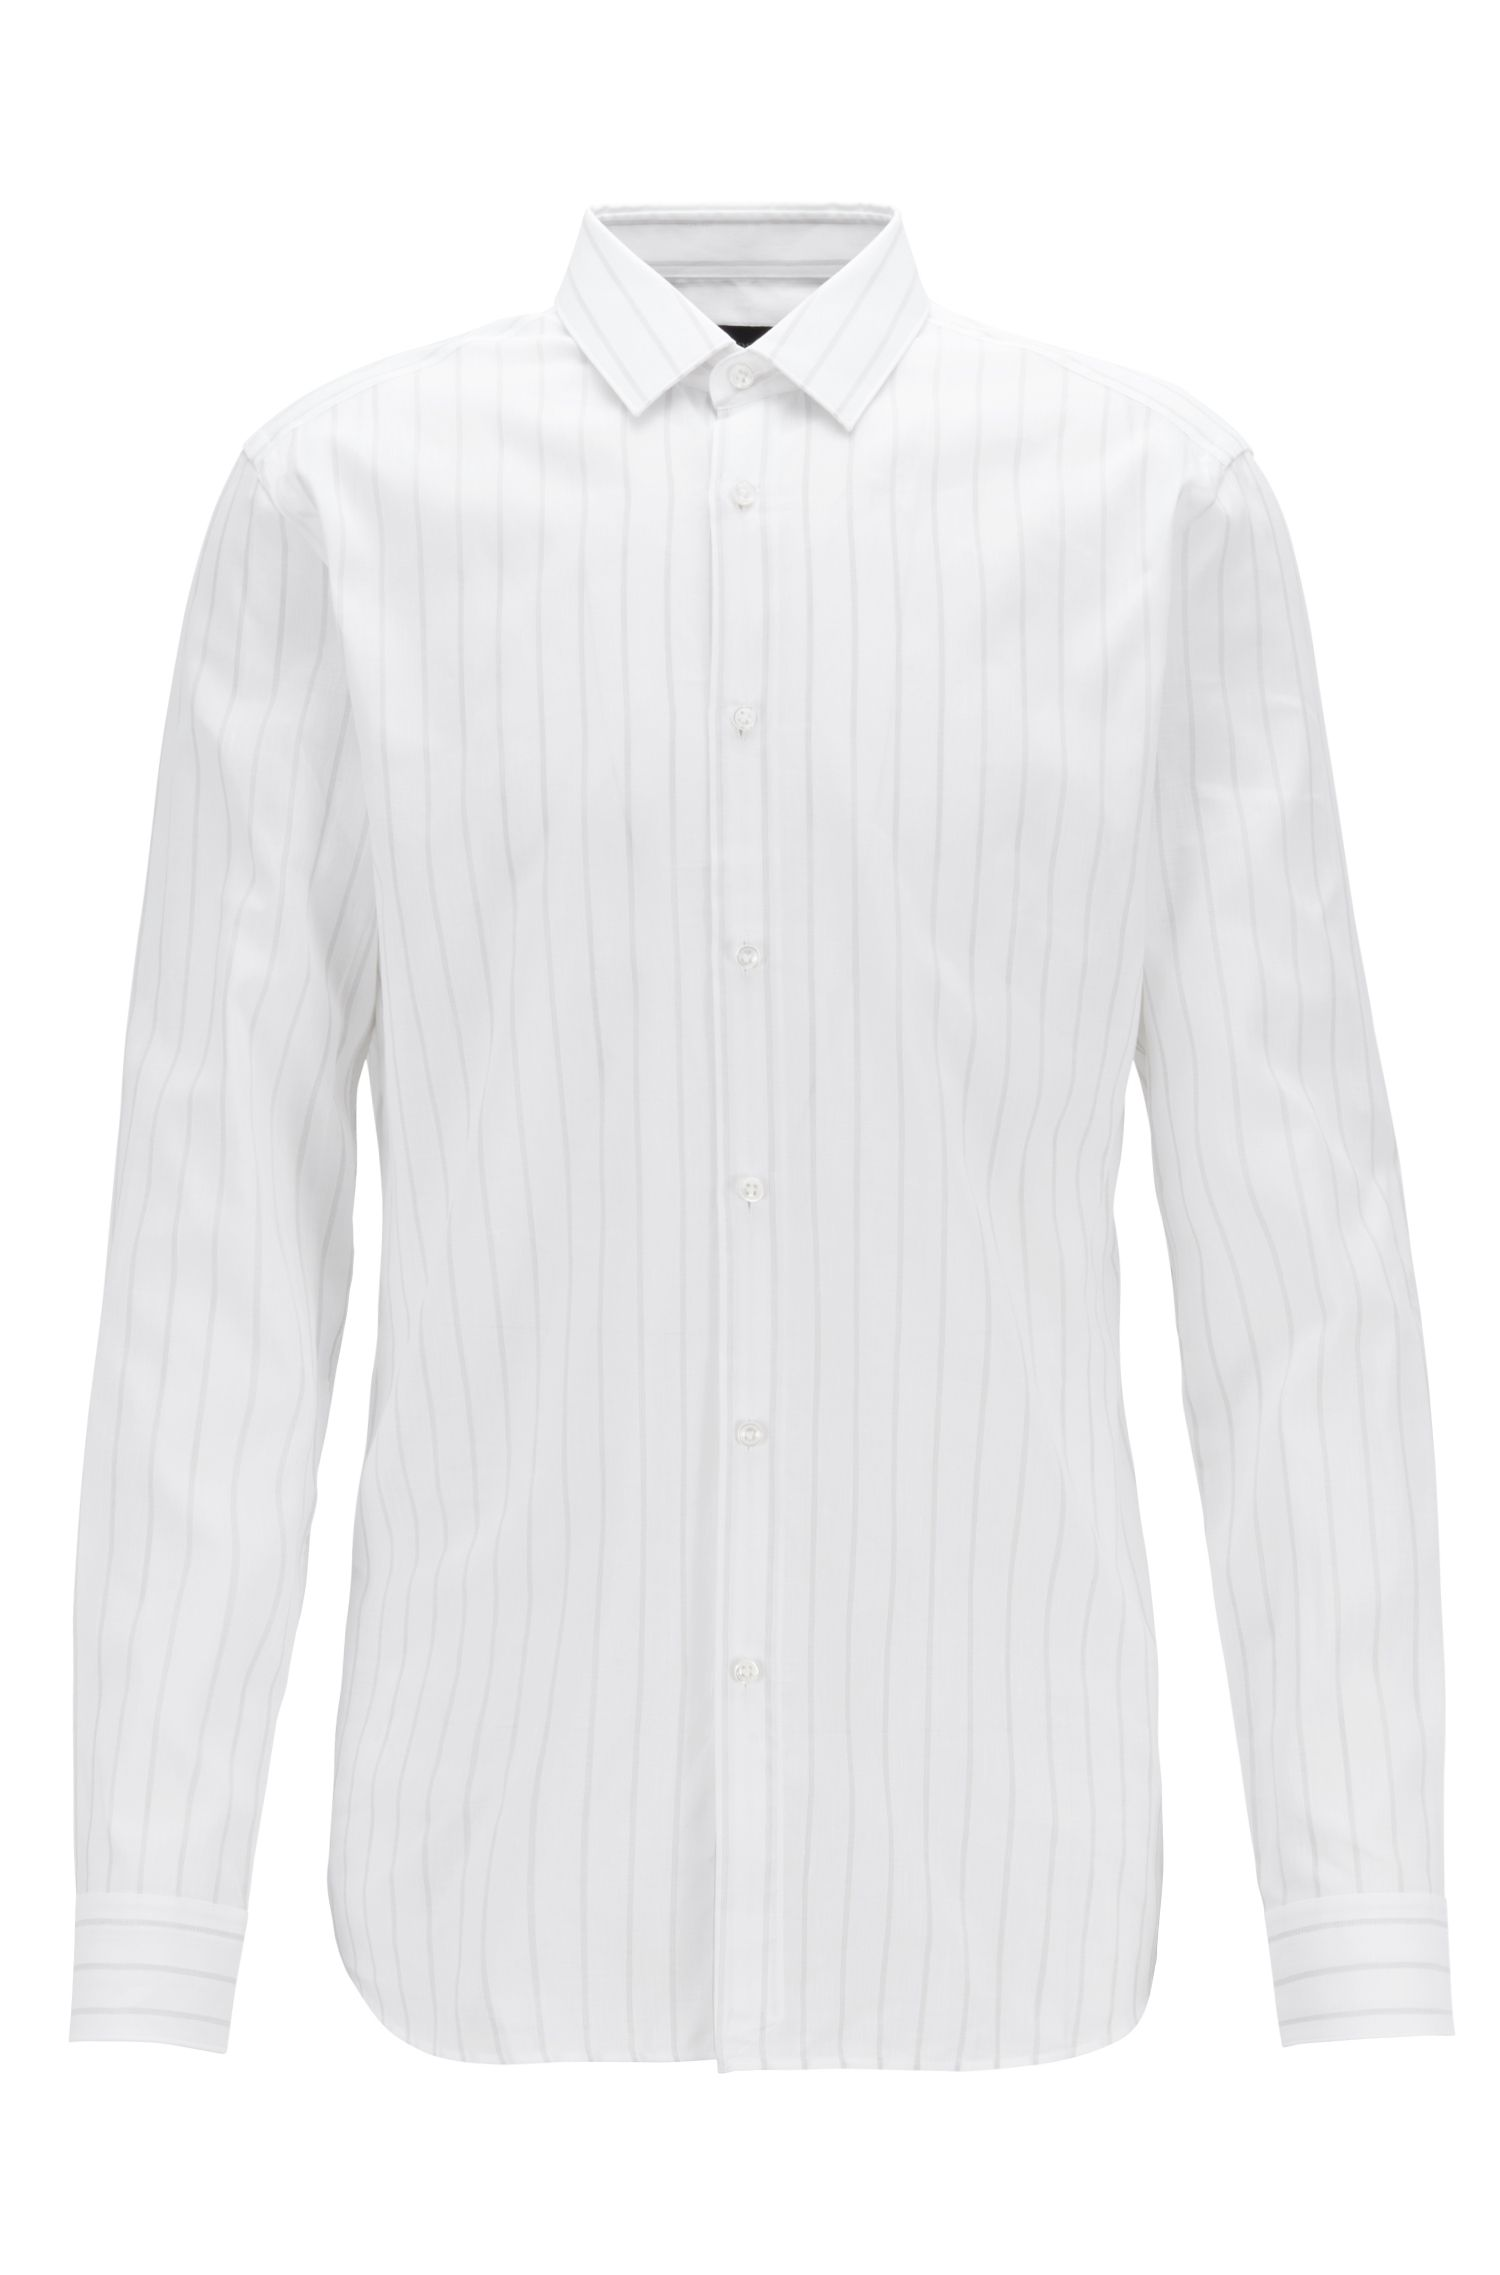 Slim-fit shirt in Italian cotton and linen, White